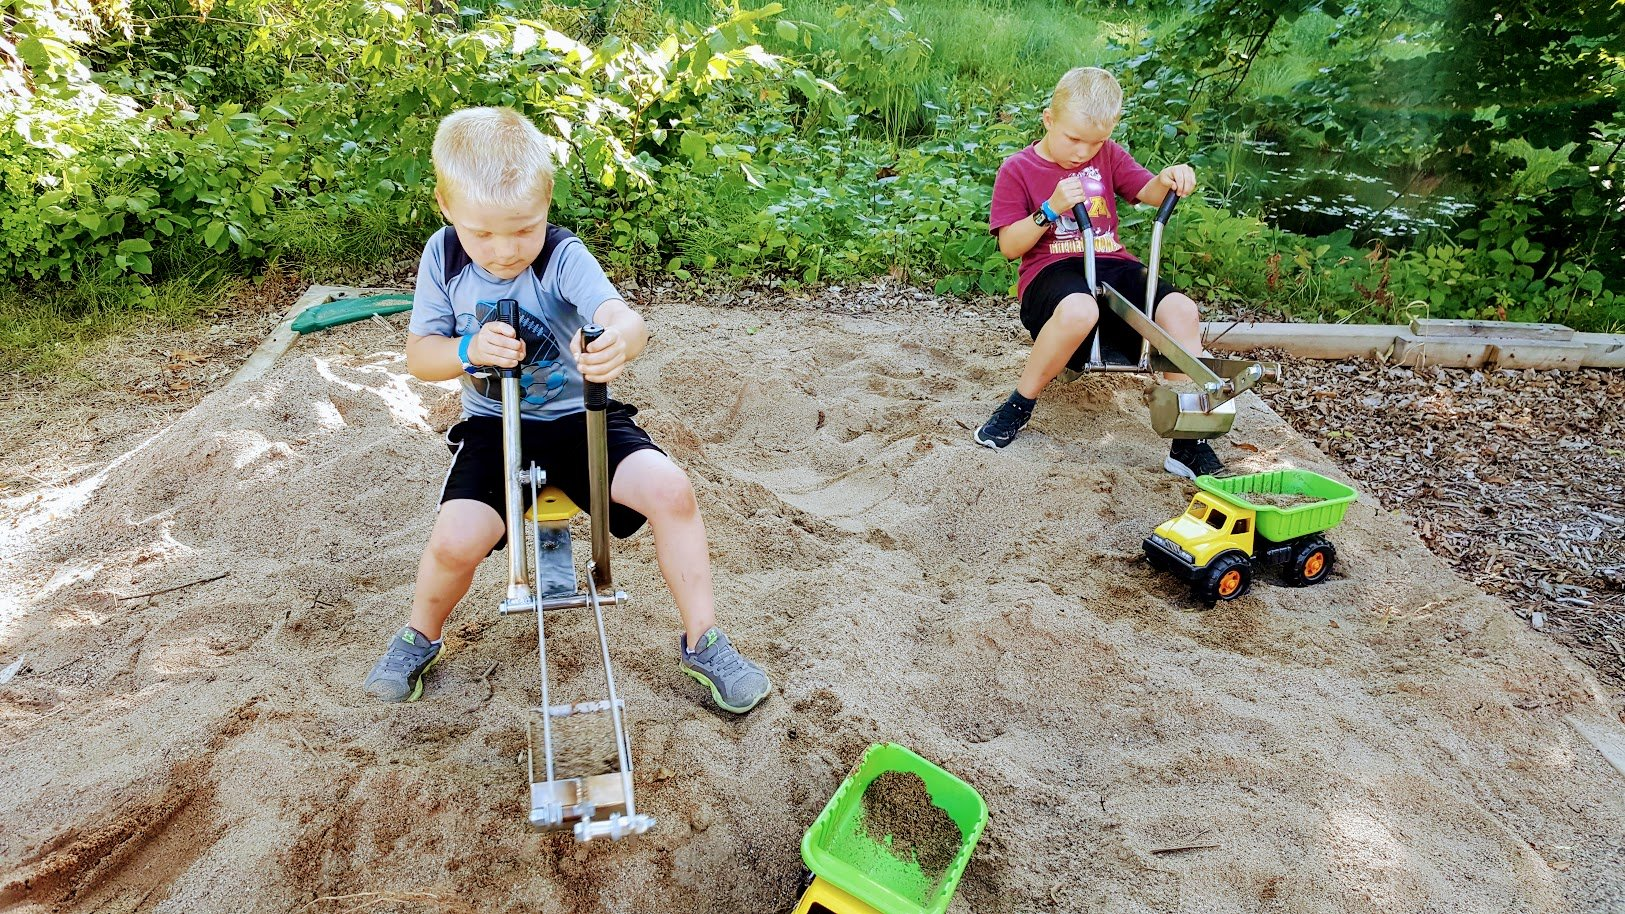 Commercial Ride On Playground Sand Digger Backhoe -Sandbox Toy Excavator -USA Made From Stainless Steel.